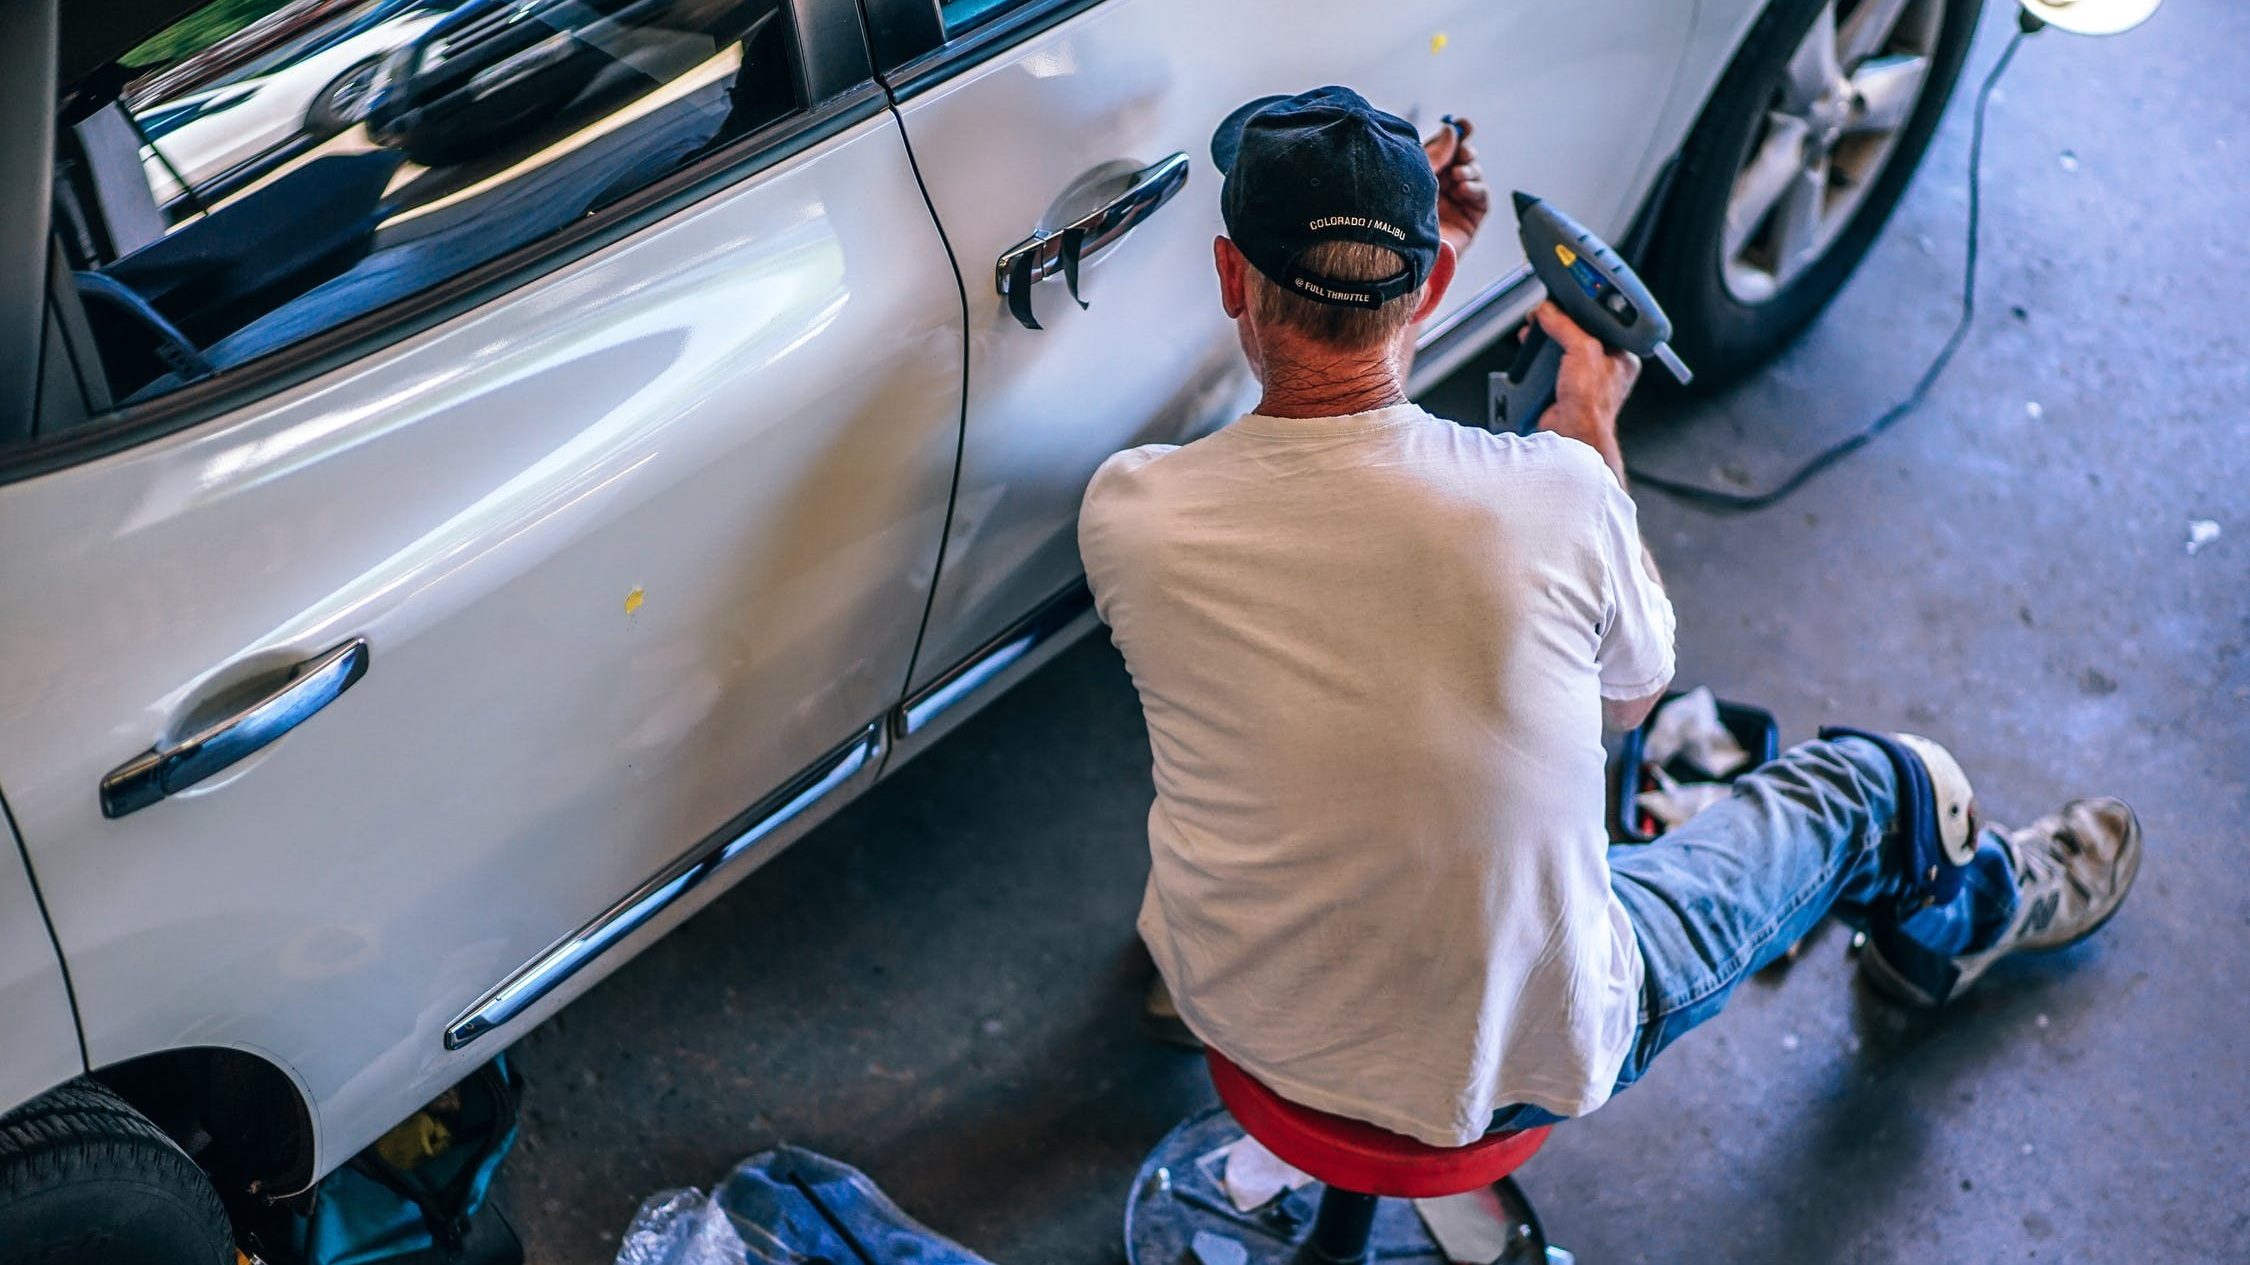 COLLISIONS - We can repair anything and everything from small dings, chips, and scratches, to major collision damage. Our technicians use the latest and greatest technology in collision repair.